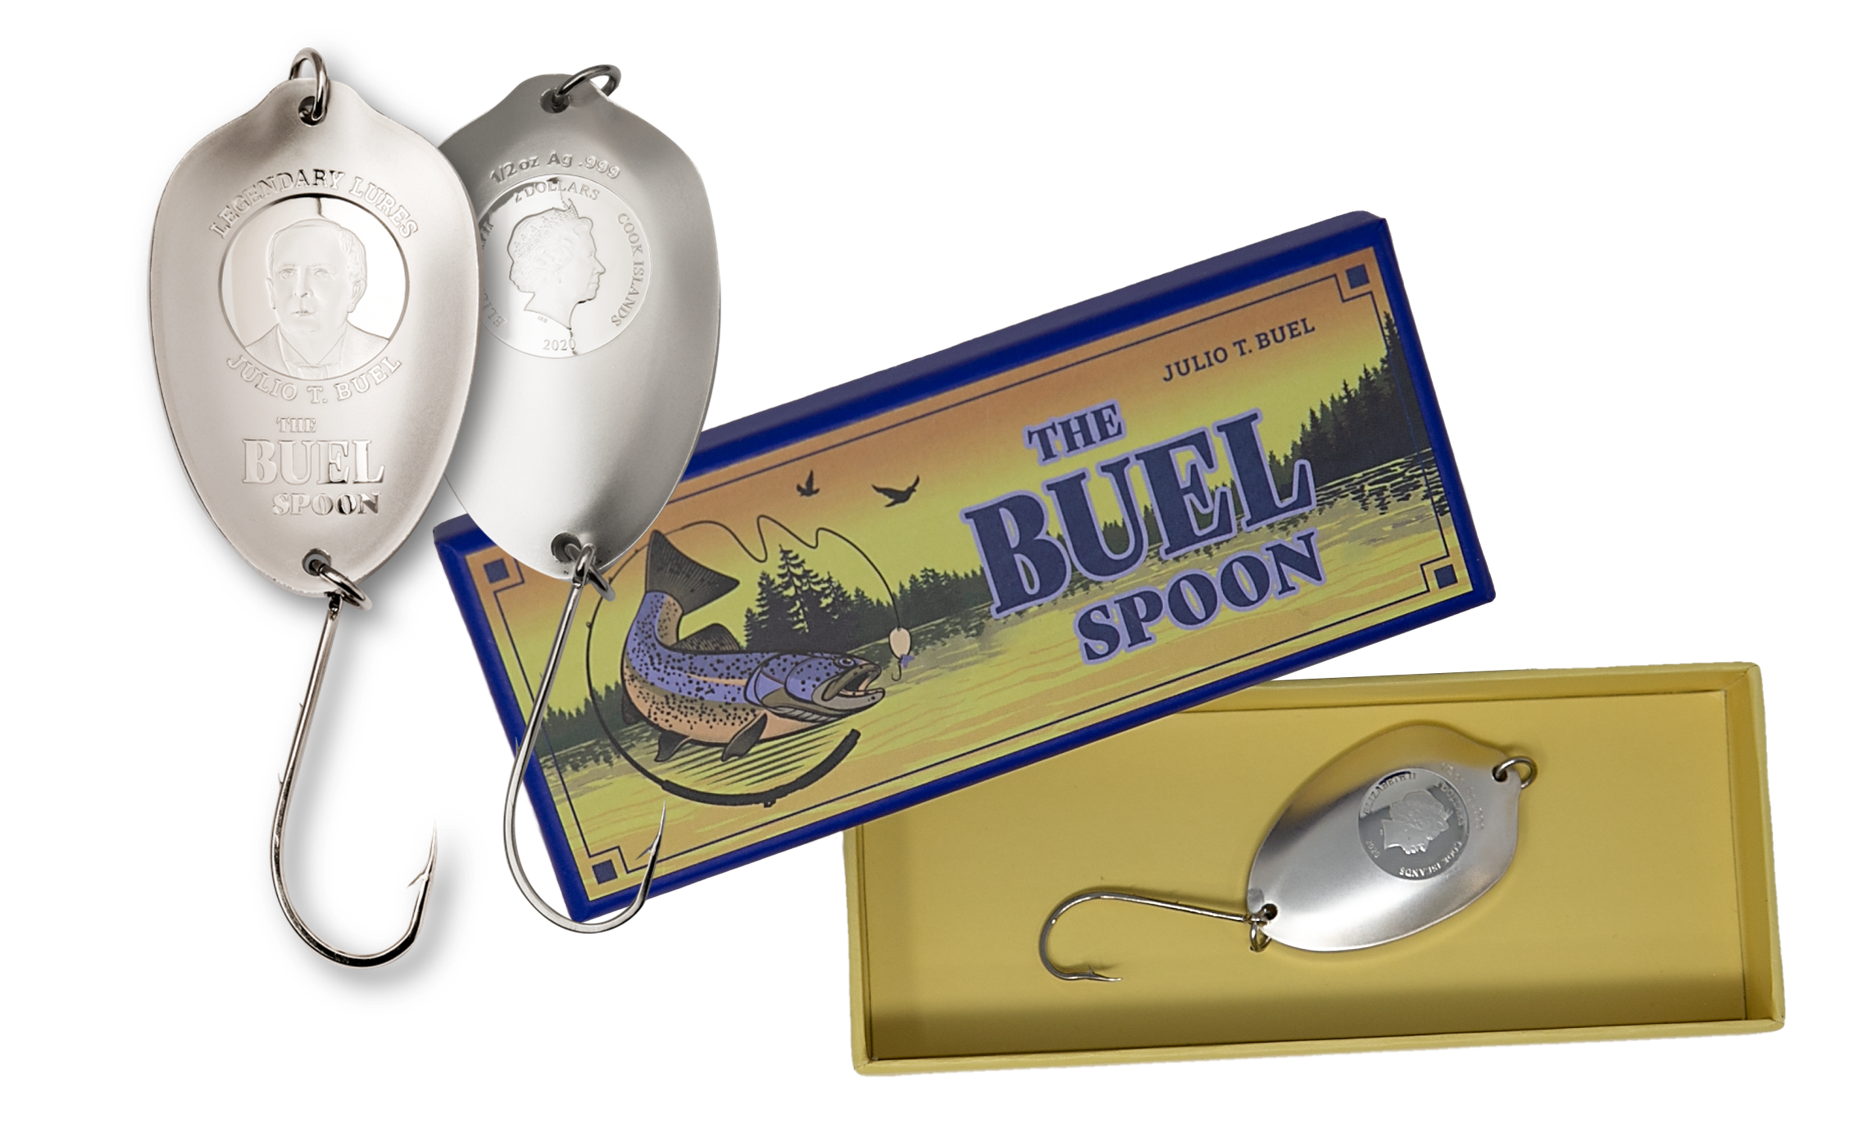 buel-spoon-collectible-silver-fishing-lure